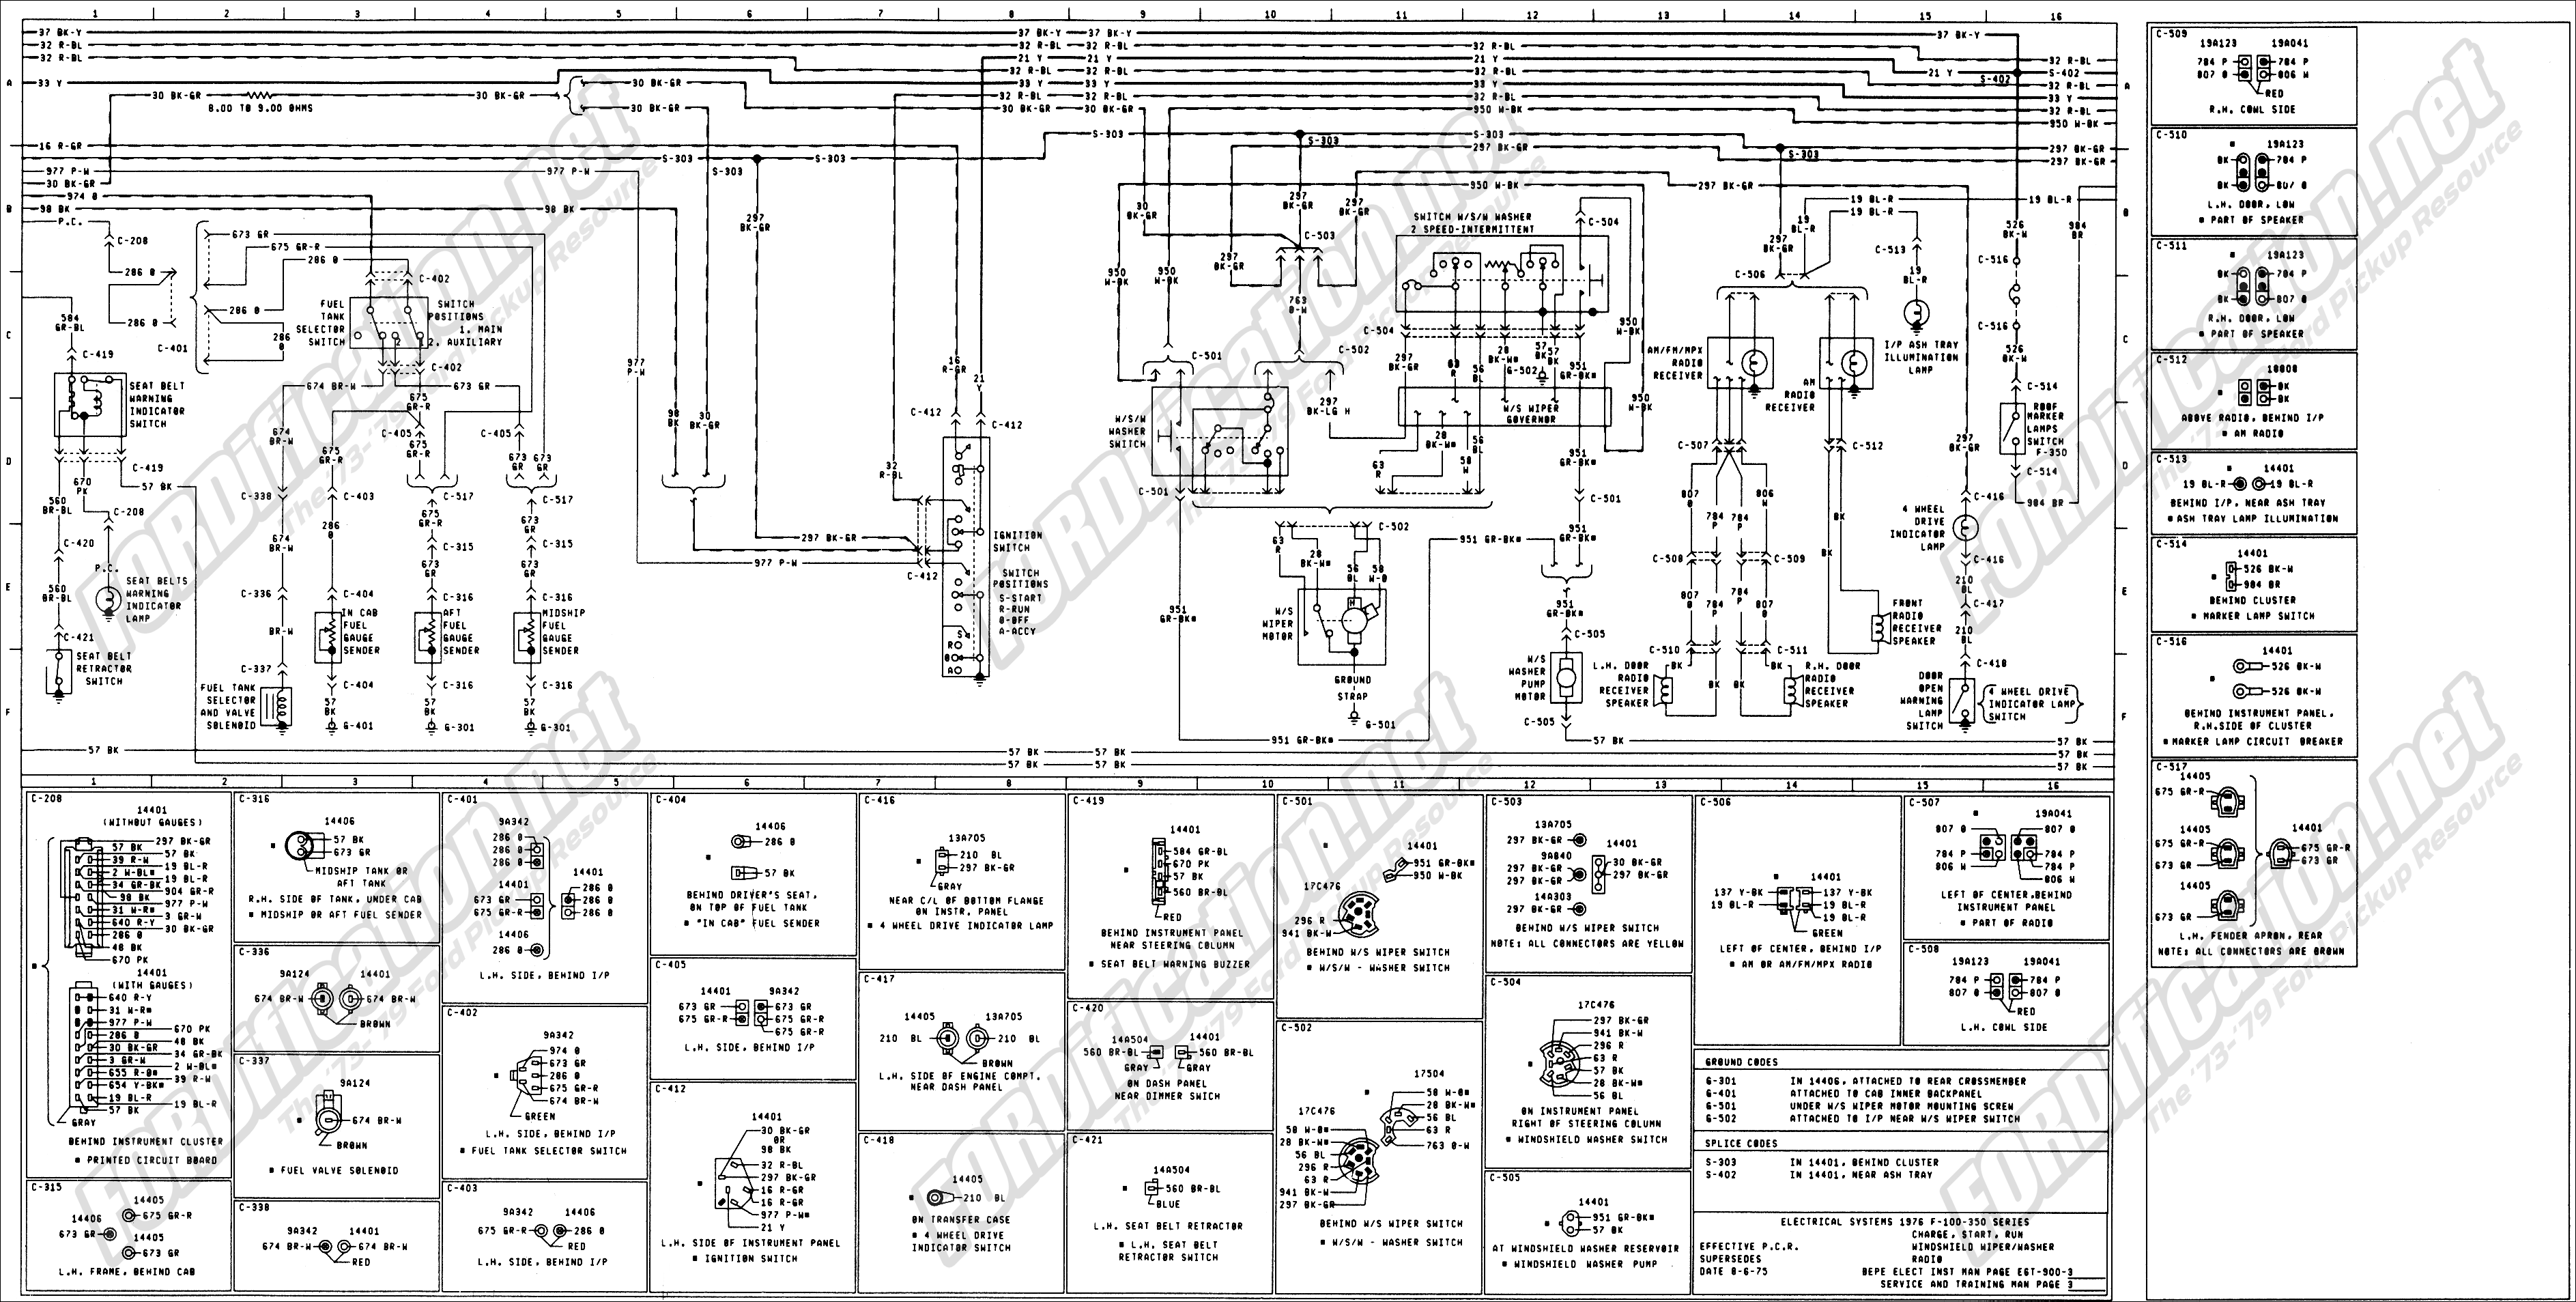 1975 Ford Maverick Wiring Xc Diagram 1973 77 F 250 Schematic Simple Rh David Huggett Co Uk 1977 1972